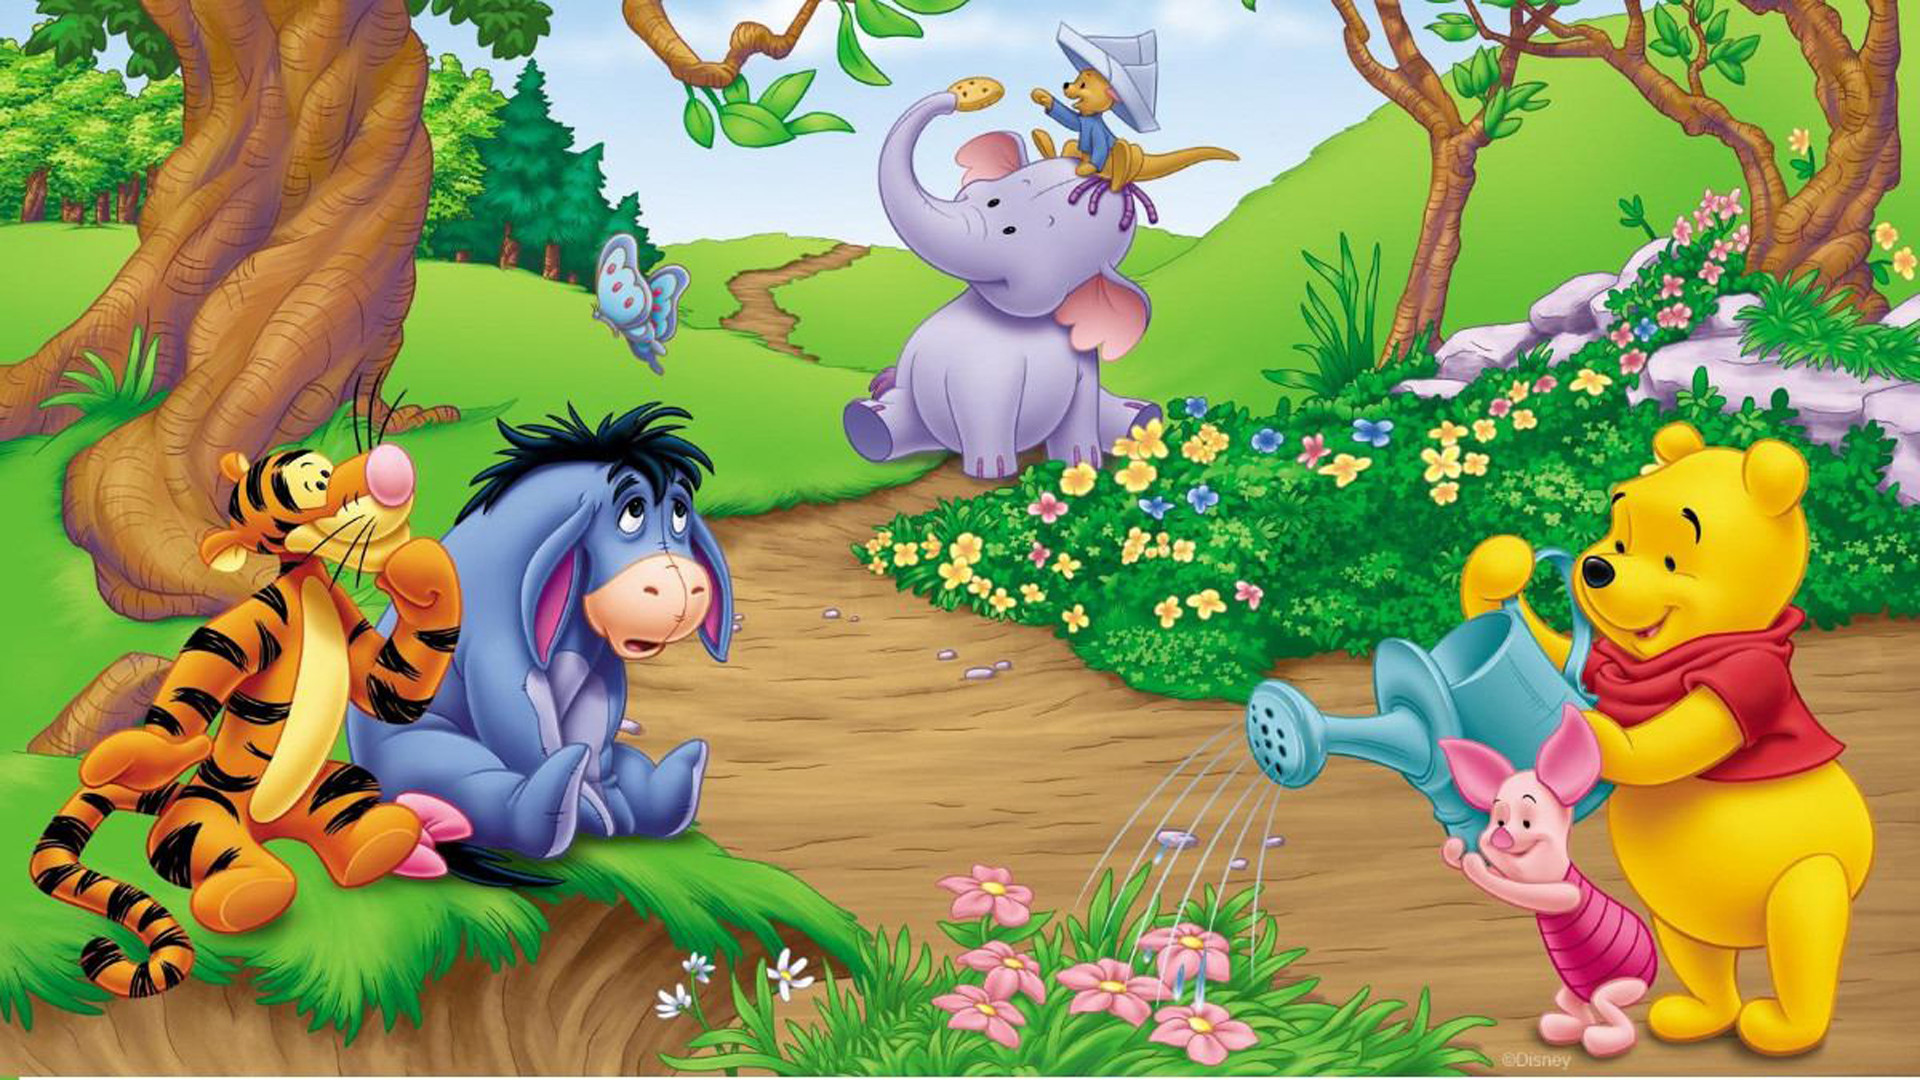 Winnie the pooh tablet wallpaper image collections for 1234 get on the dance floor hd video song download